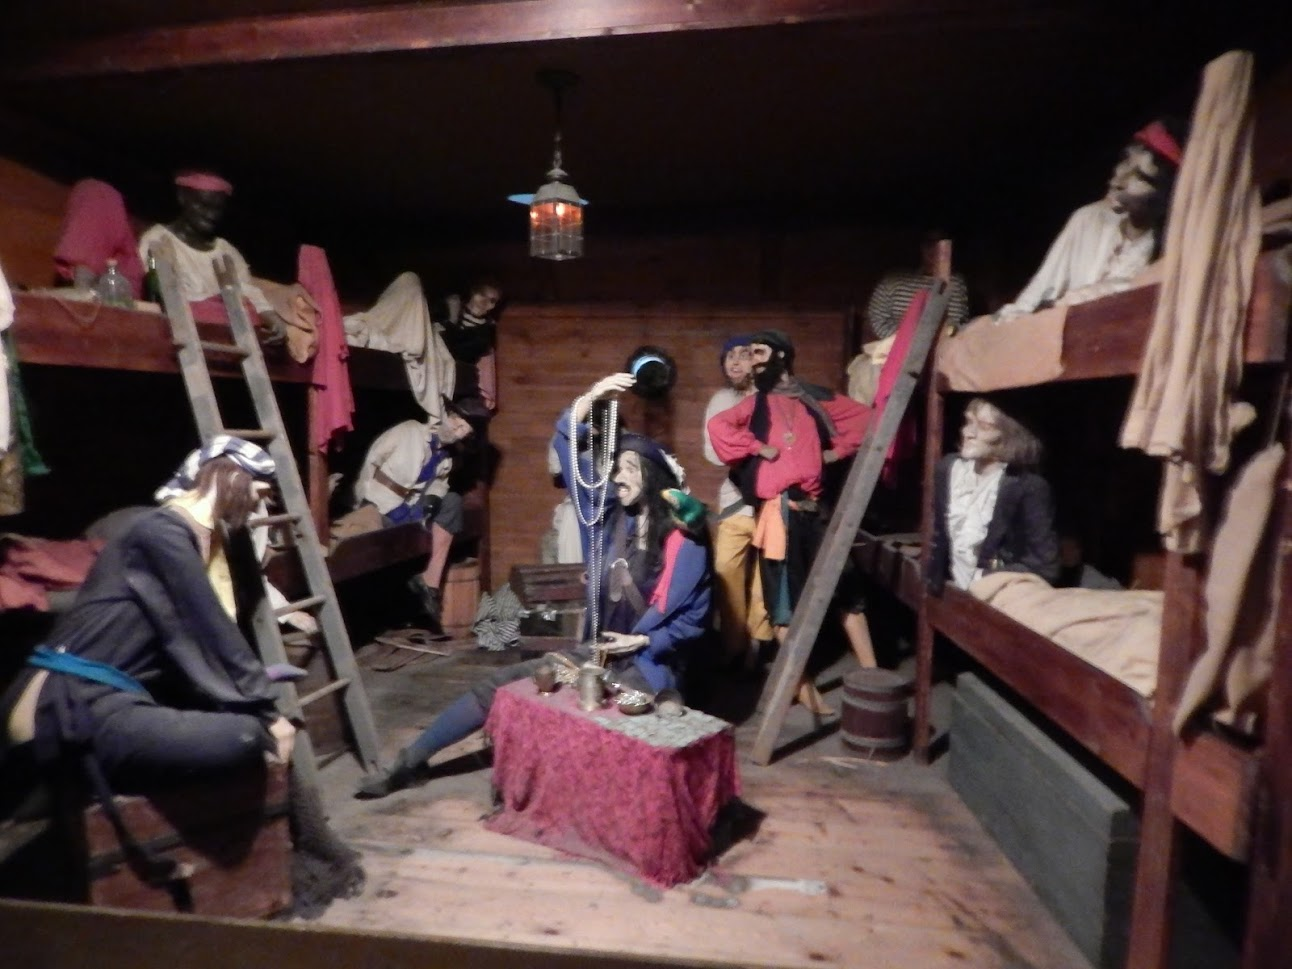 New England Pirate Musuem